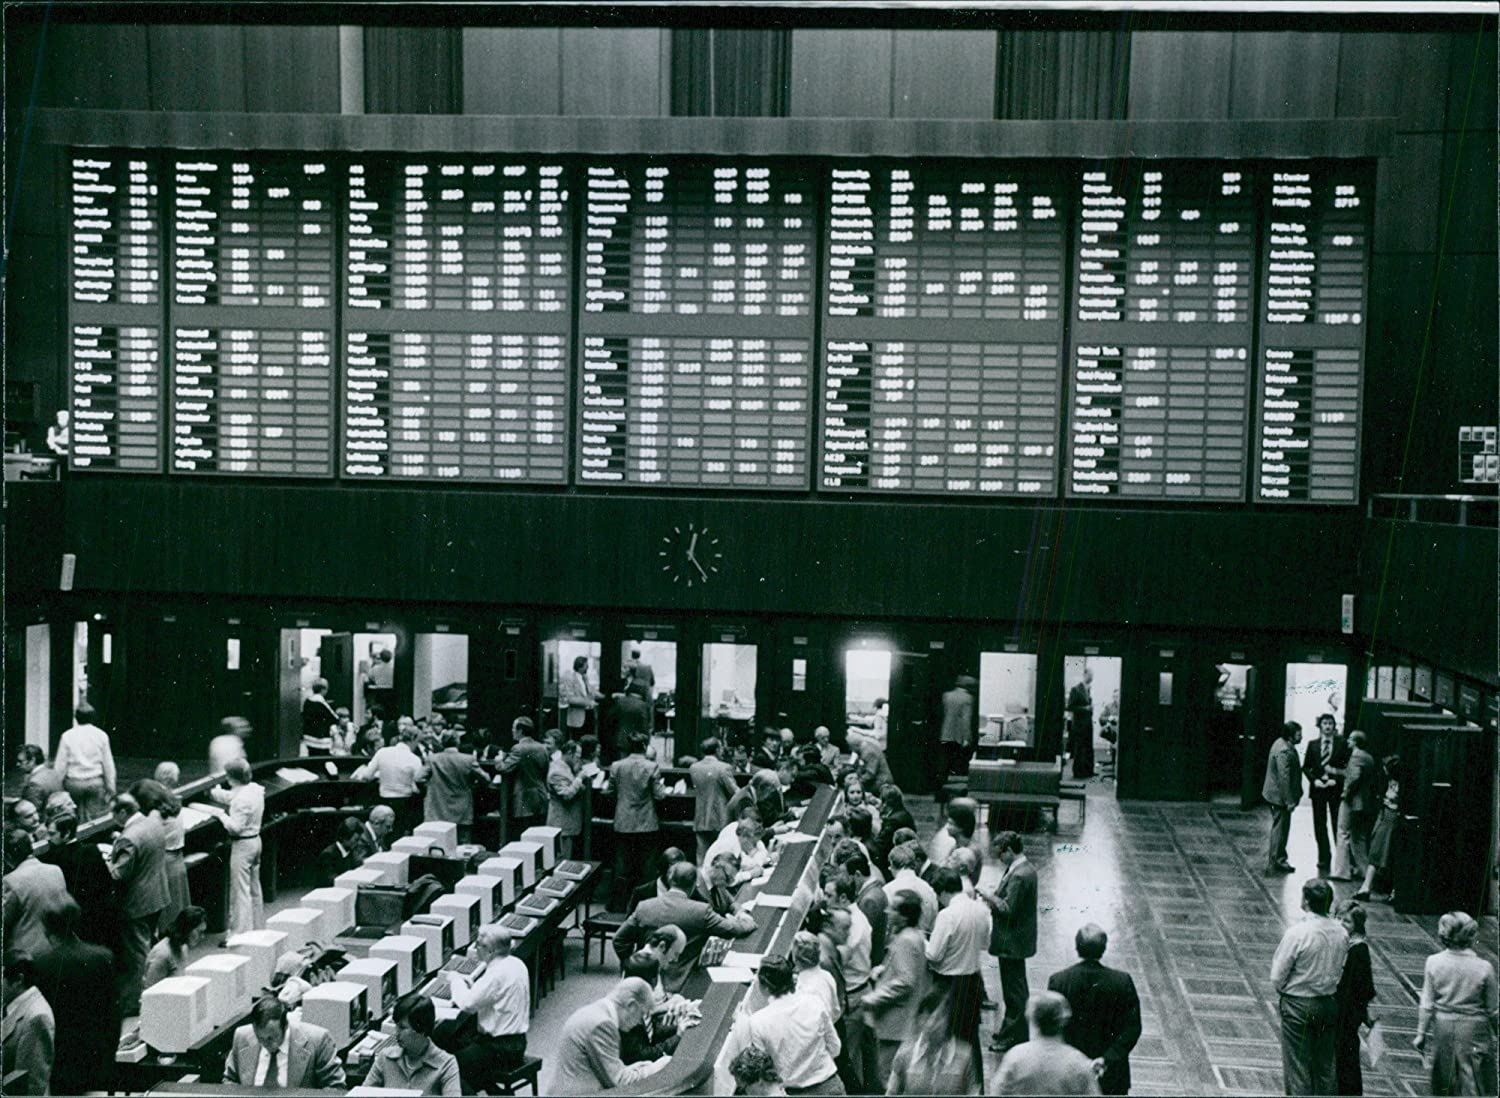 Amazon.com: Vintage photo of Frankfurt Stock exchange, Dealers ...